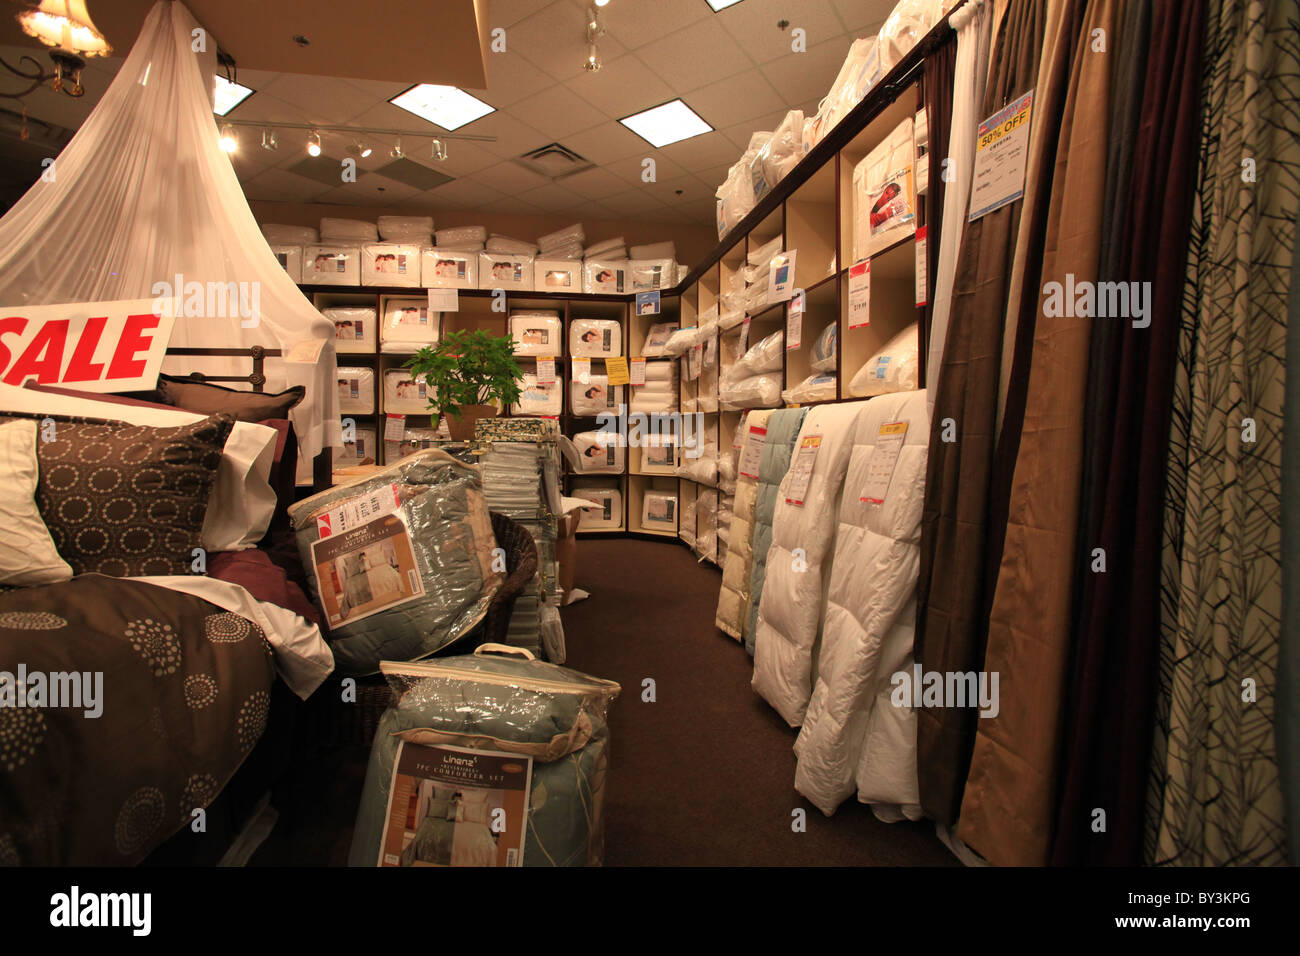 Quilts and pillows for sale during Boxing week in Quilts etc store in Vaughan Mills Mall in Toronto - Stock Image